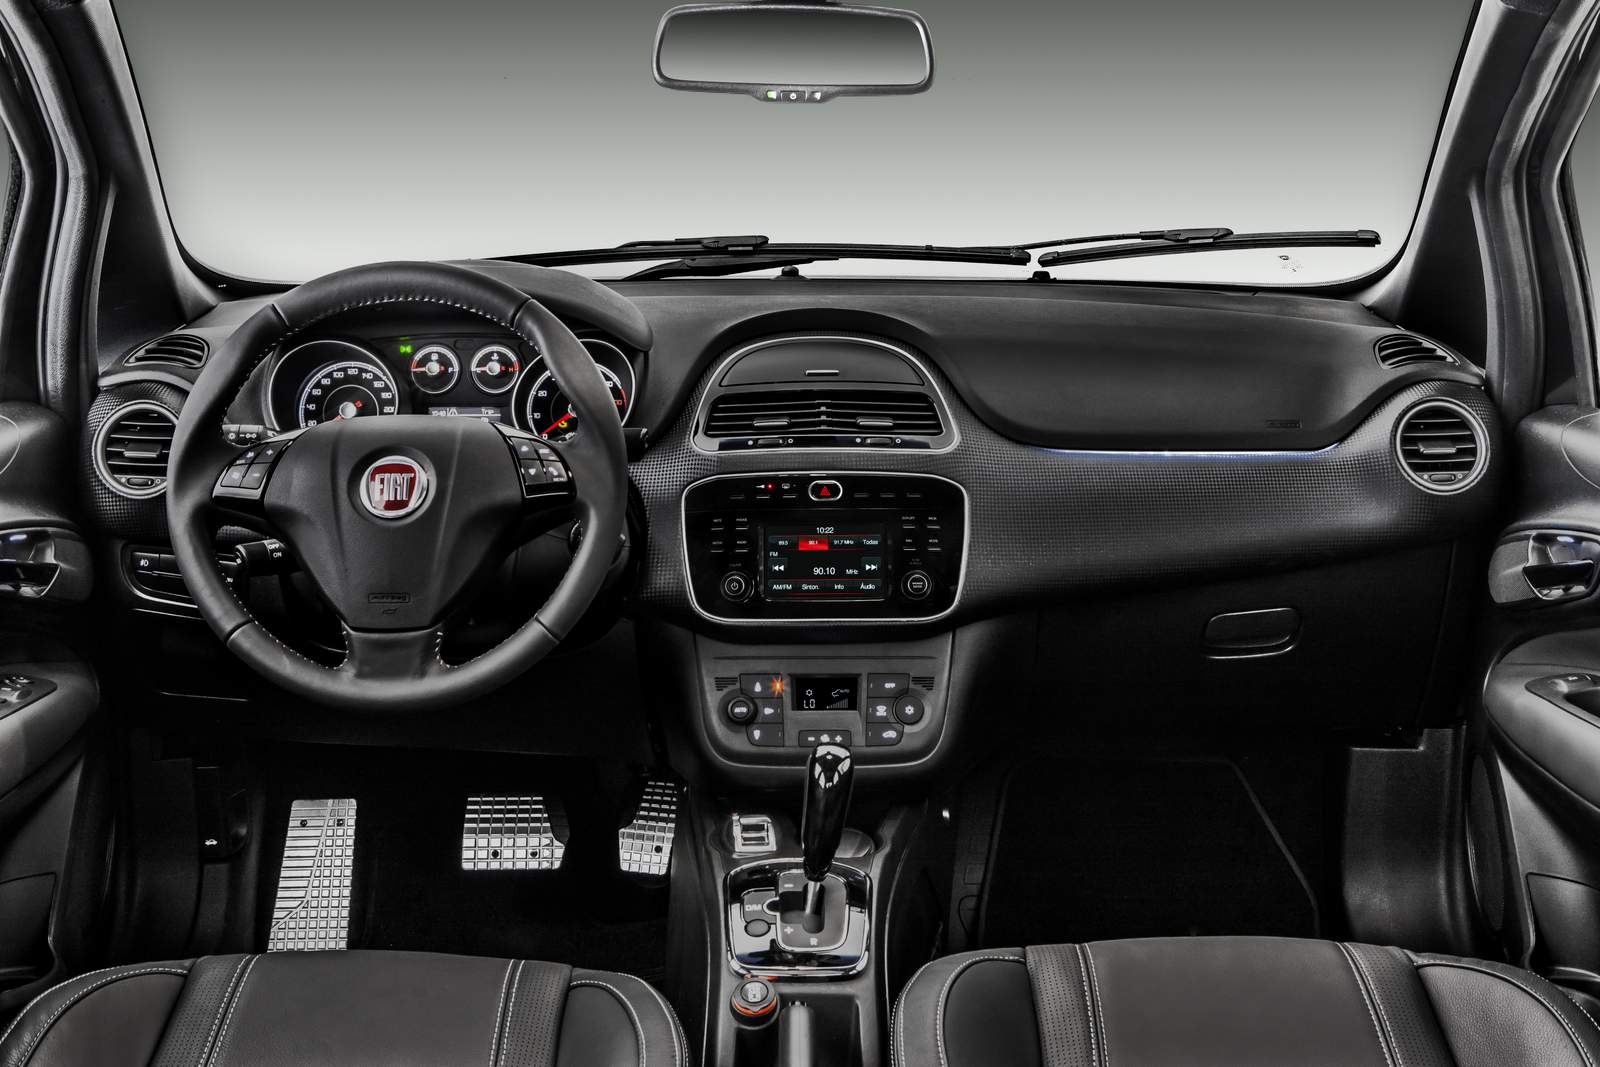 fiat punto 2016 fotos tabela de pre o e dados de consumo car blog br. Black Bedroom Furniture Sets. Home Design Ideas